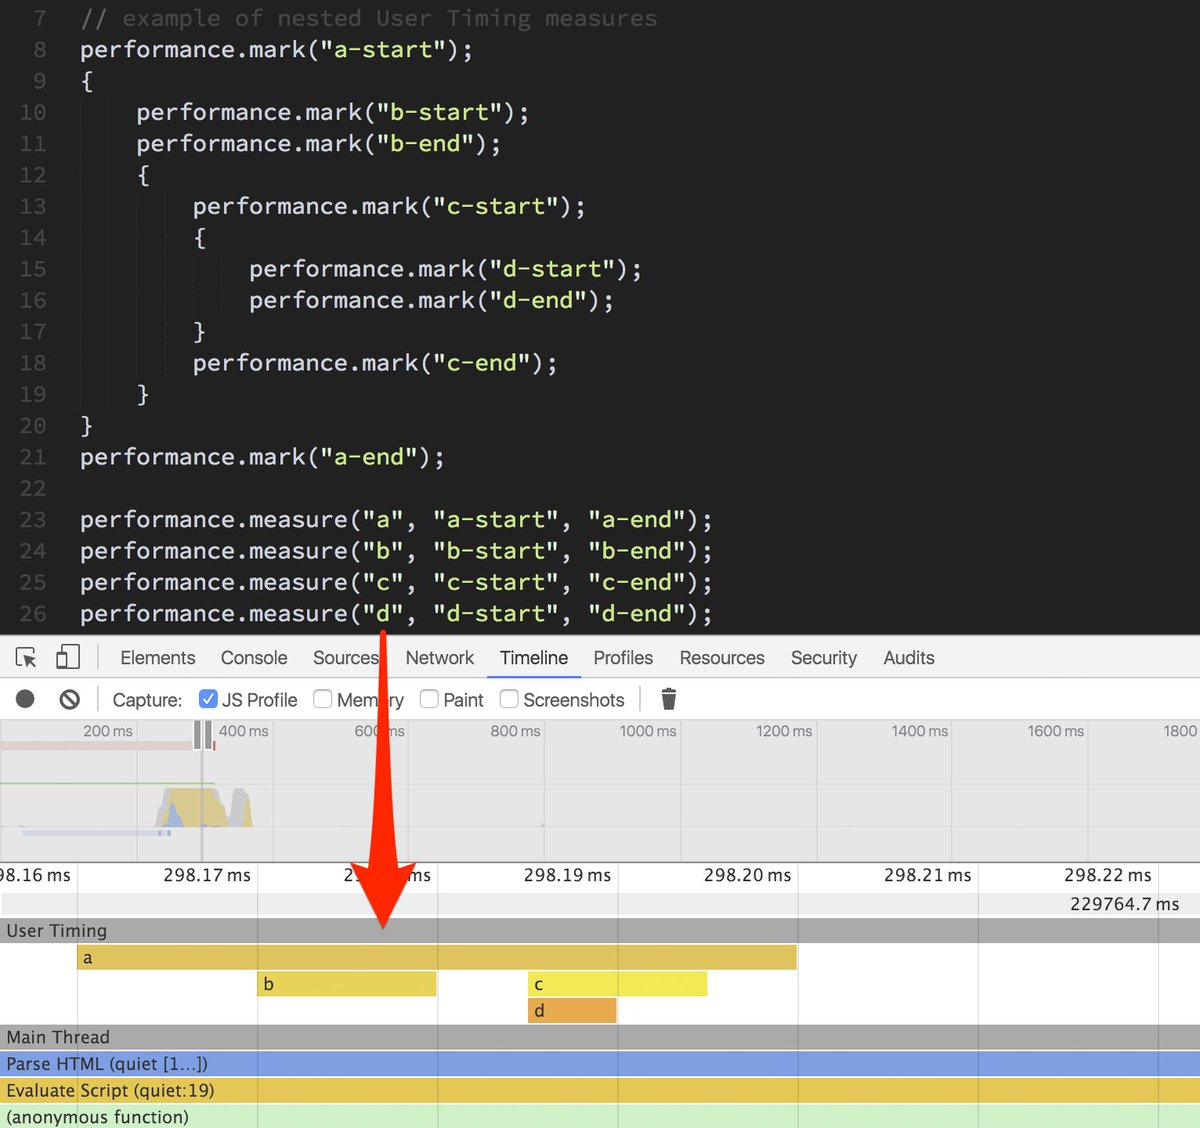 Chrome (Canary) DevTools will now show User Timing measures in the timeline - woot! give it a try. https://t.co/96nFh6LNGg